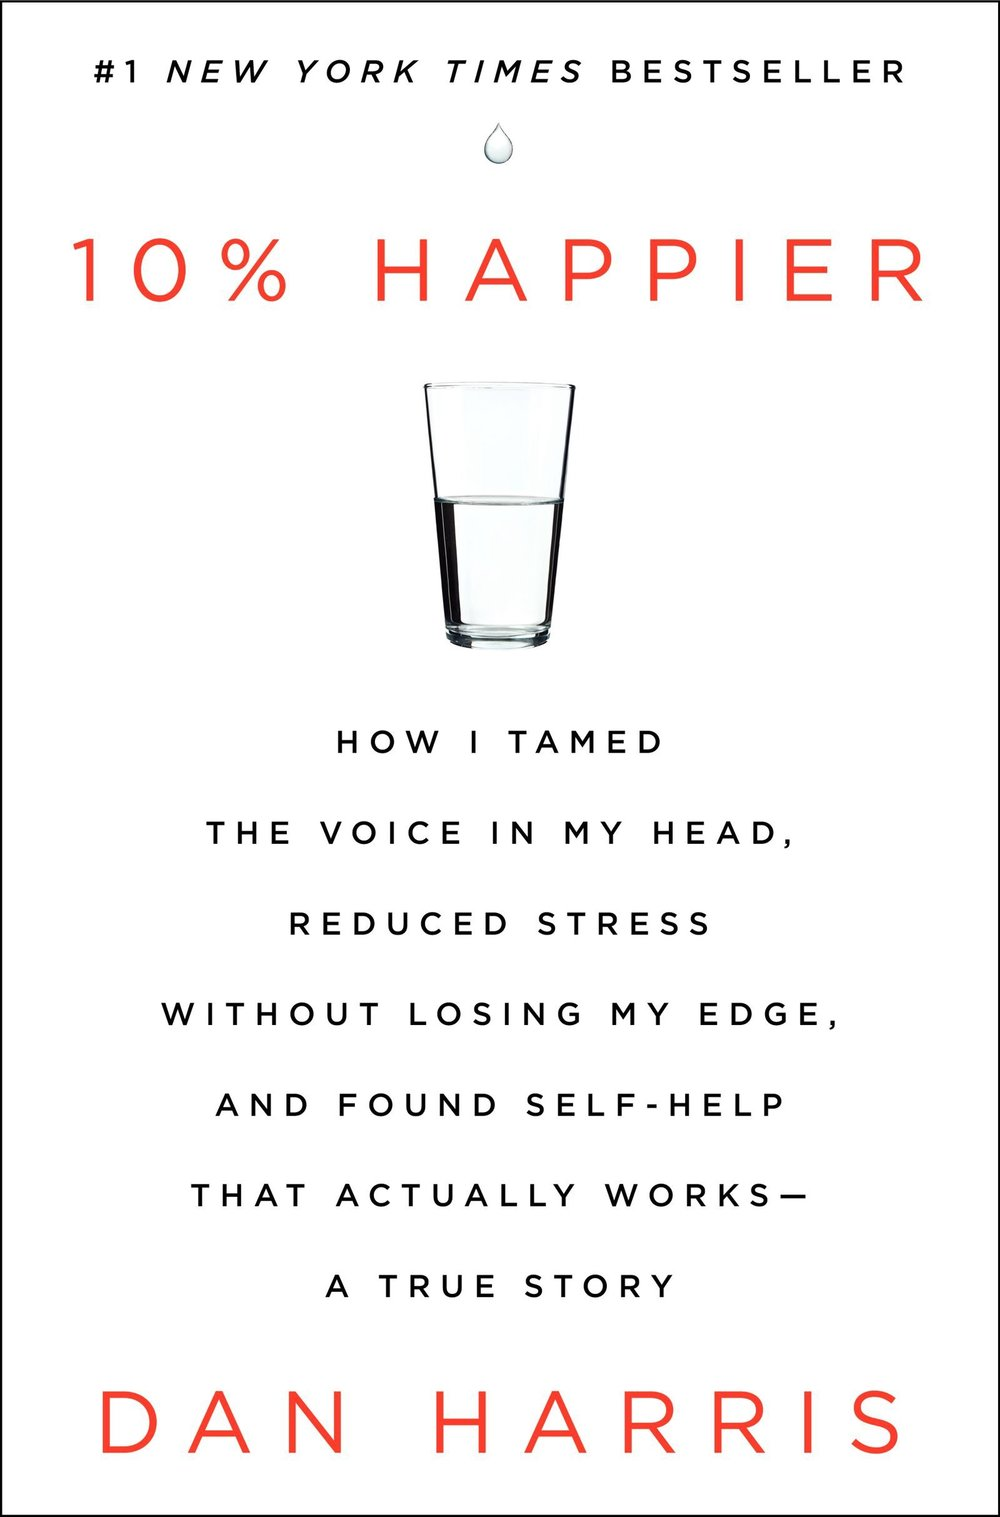 Dan Harris 10% happier (hi-res).jpg